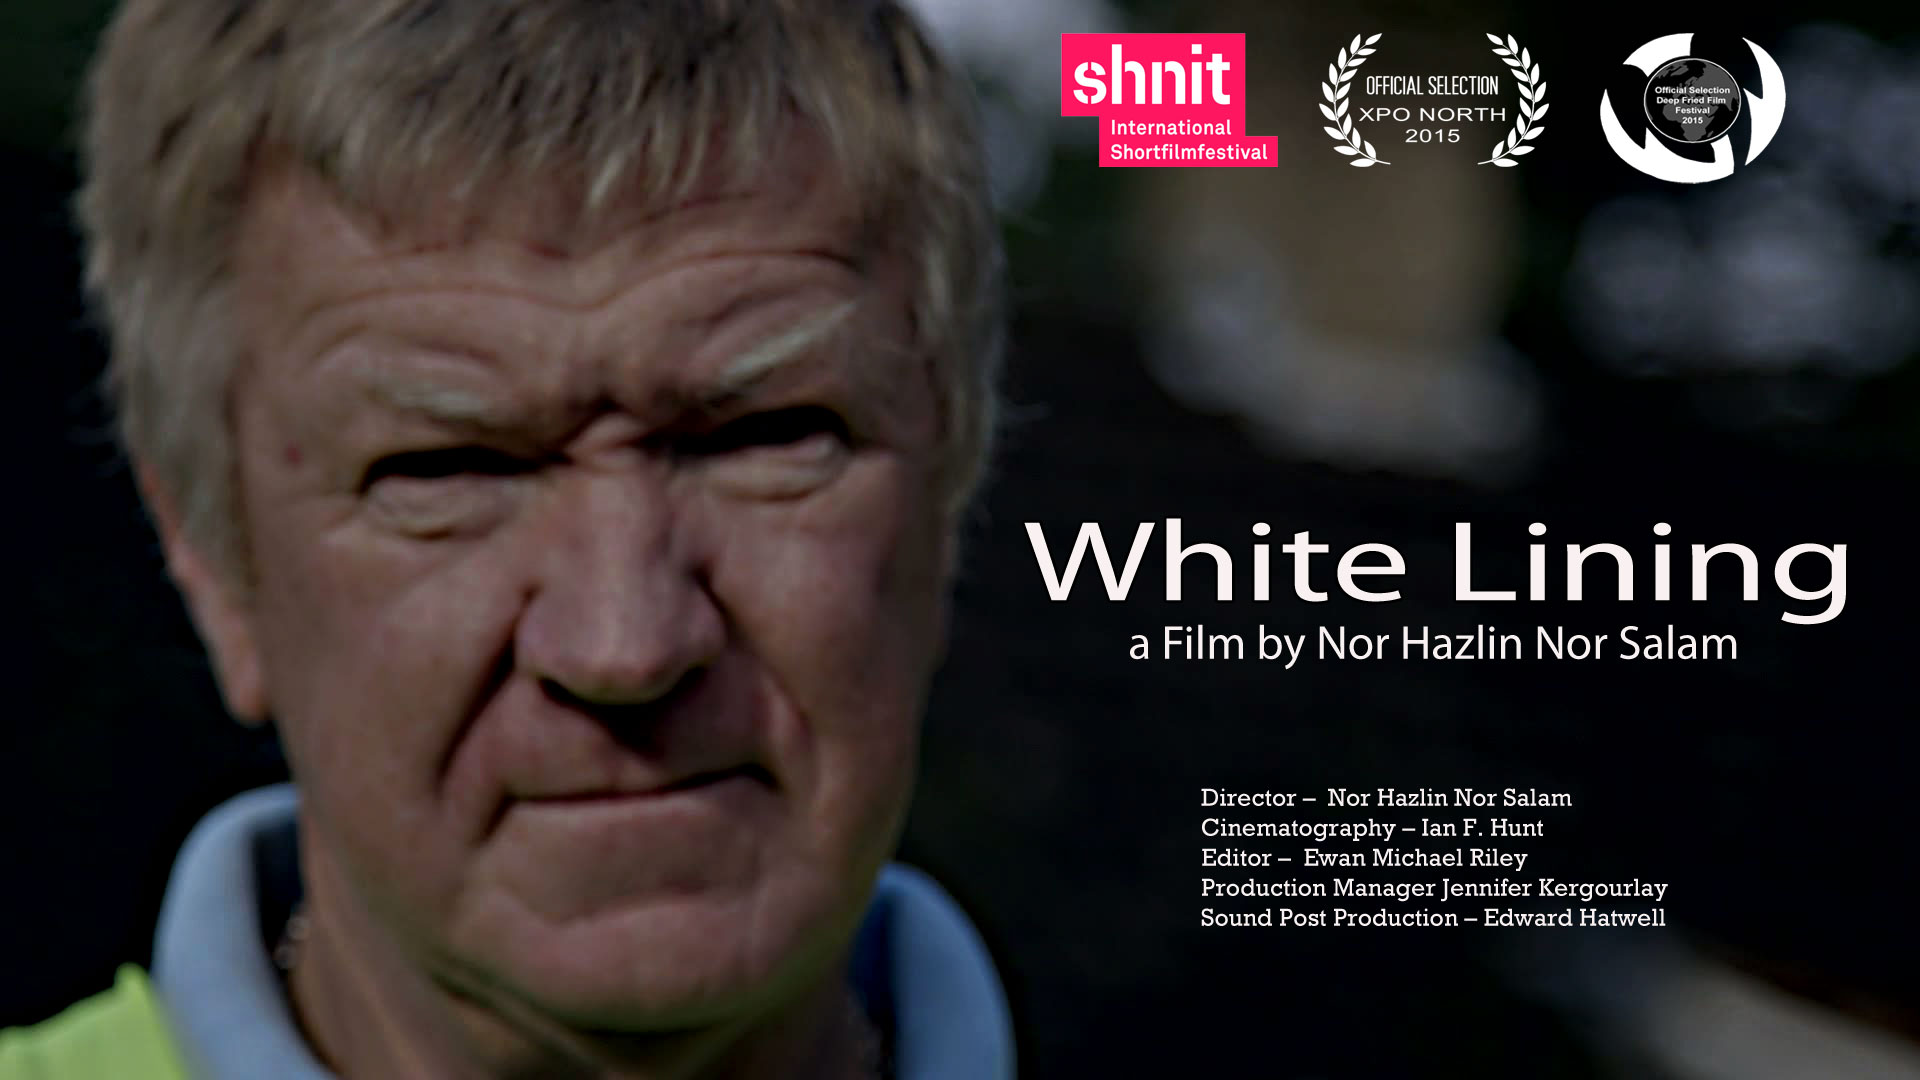 Award winning short film White Lining